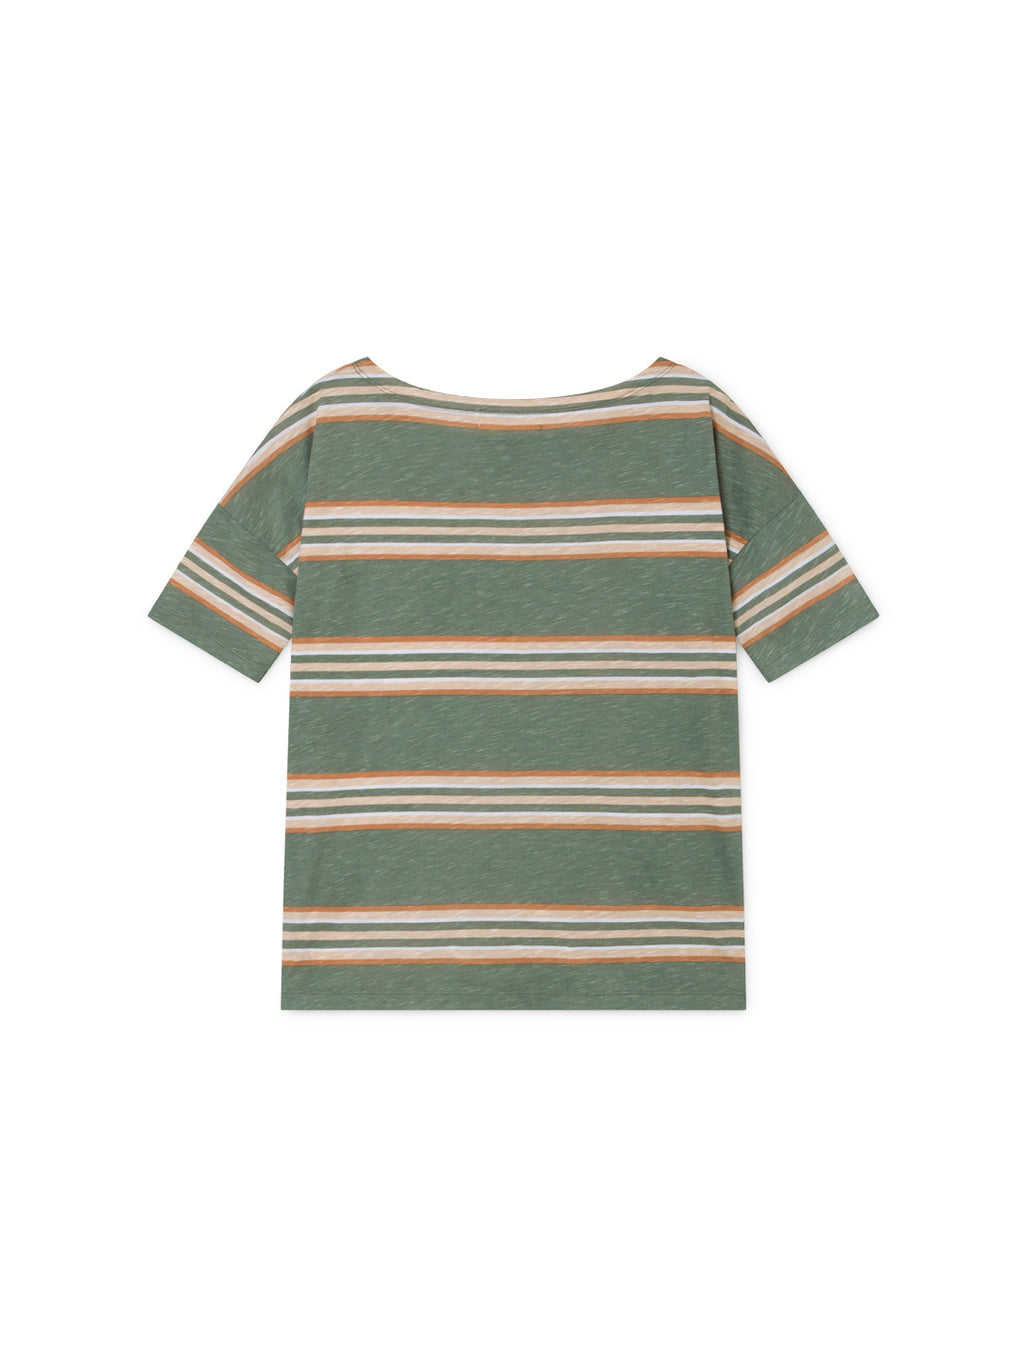 TWOTHIRDS Womens Tee: Toralla - Washed Green back